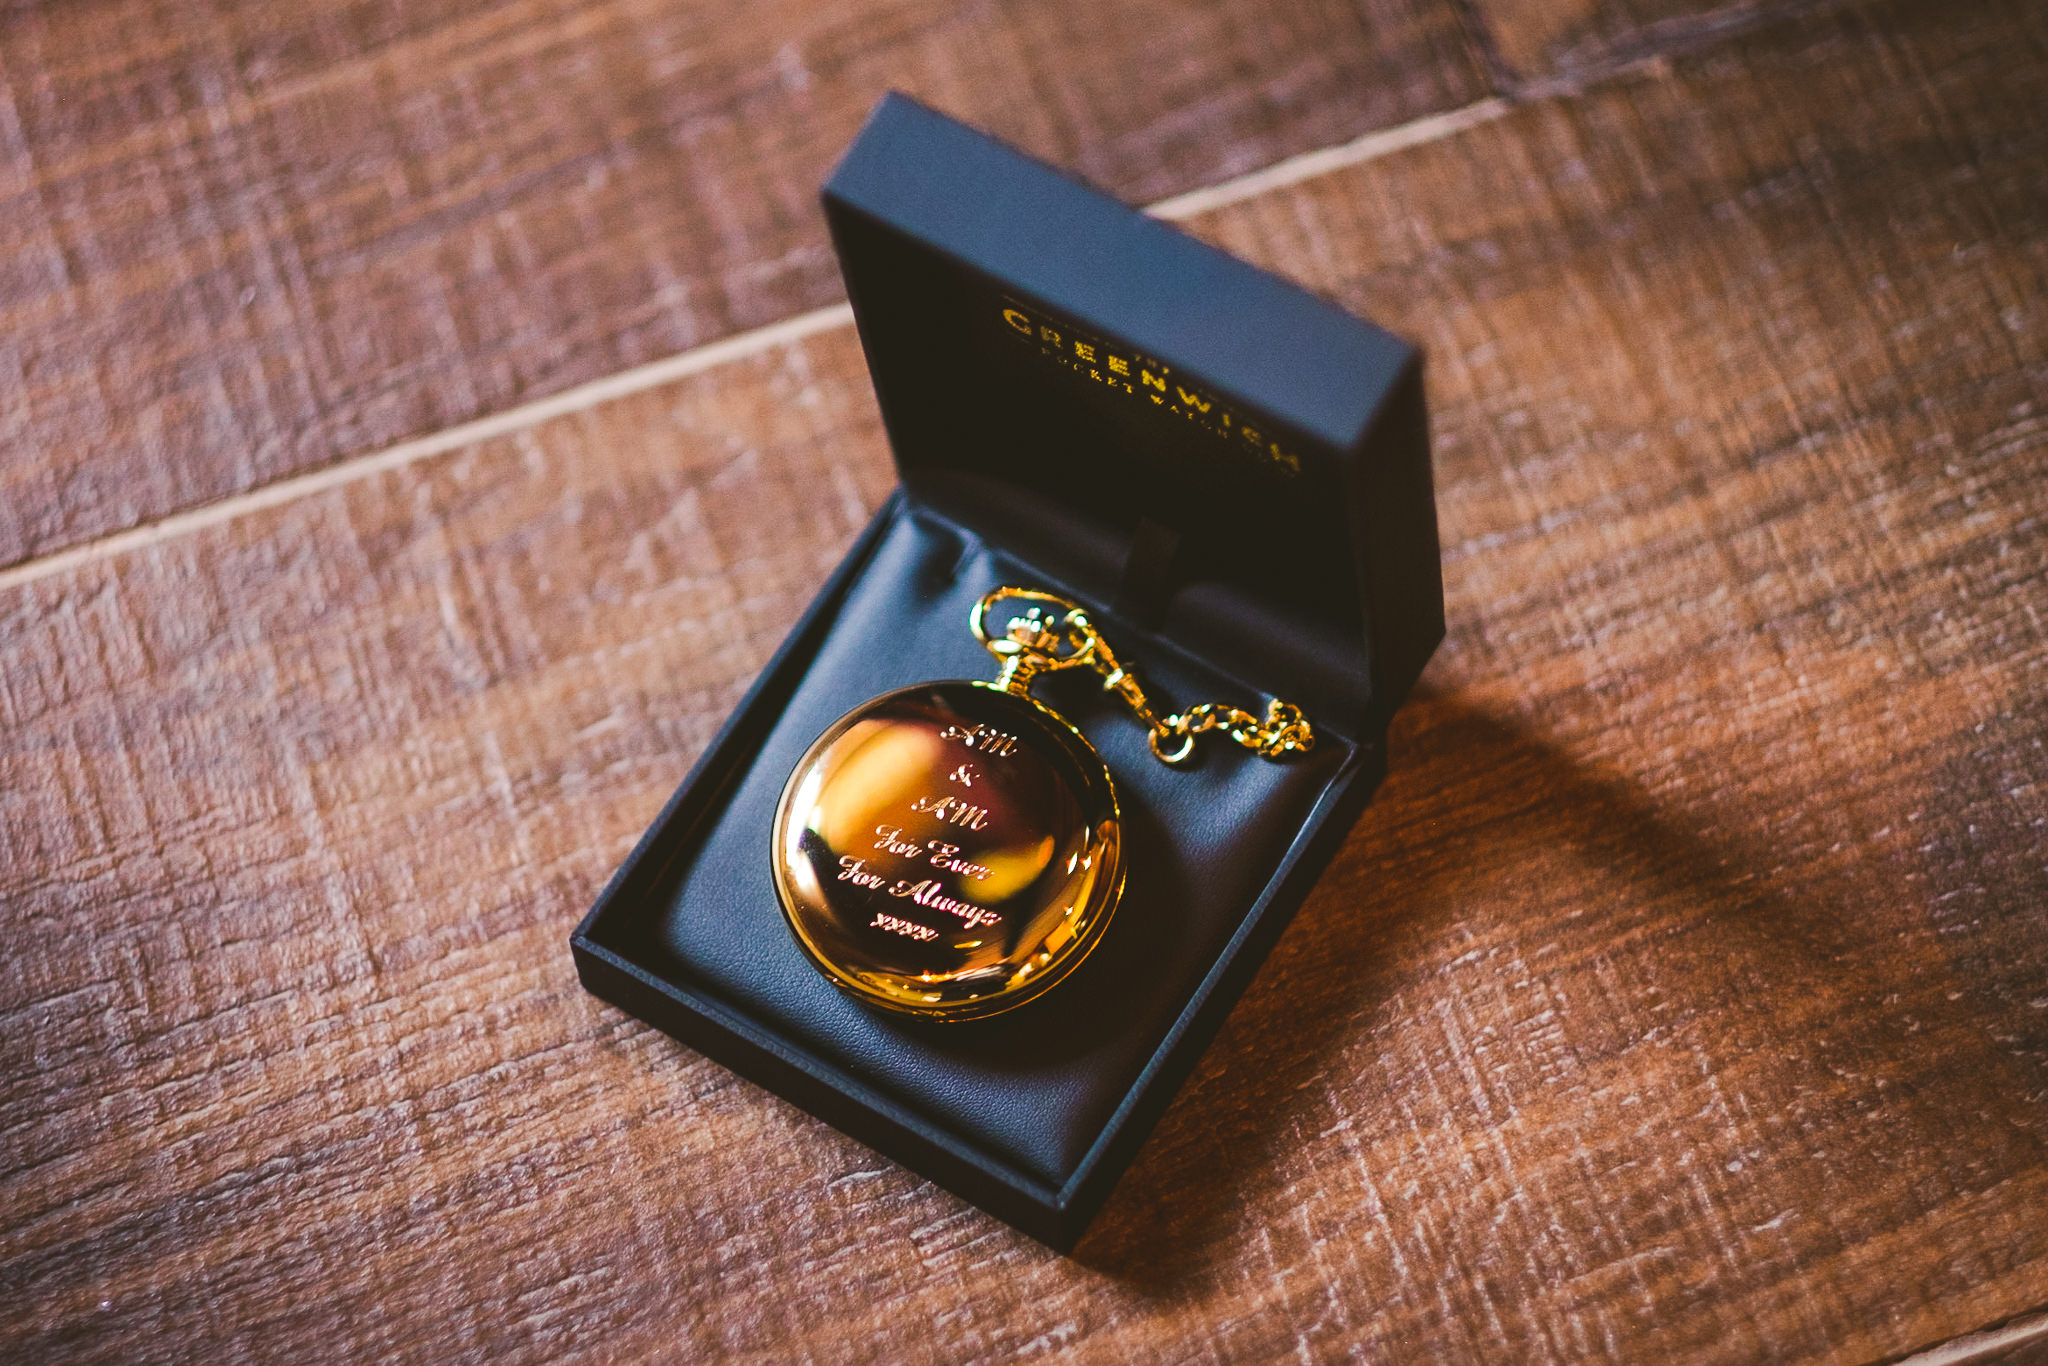 Pocket watch heirloom gift from the bride to the groom